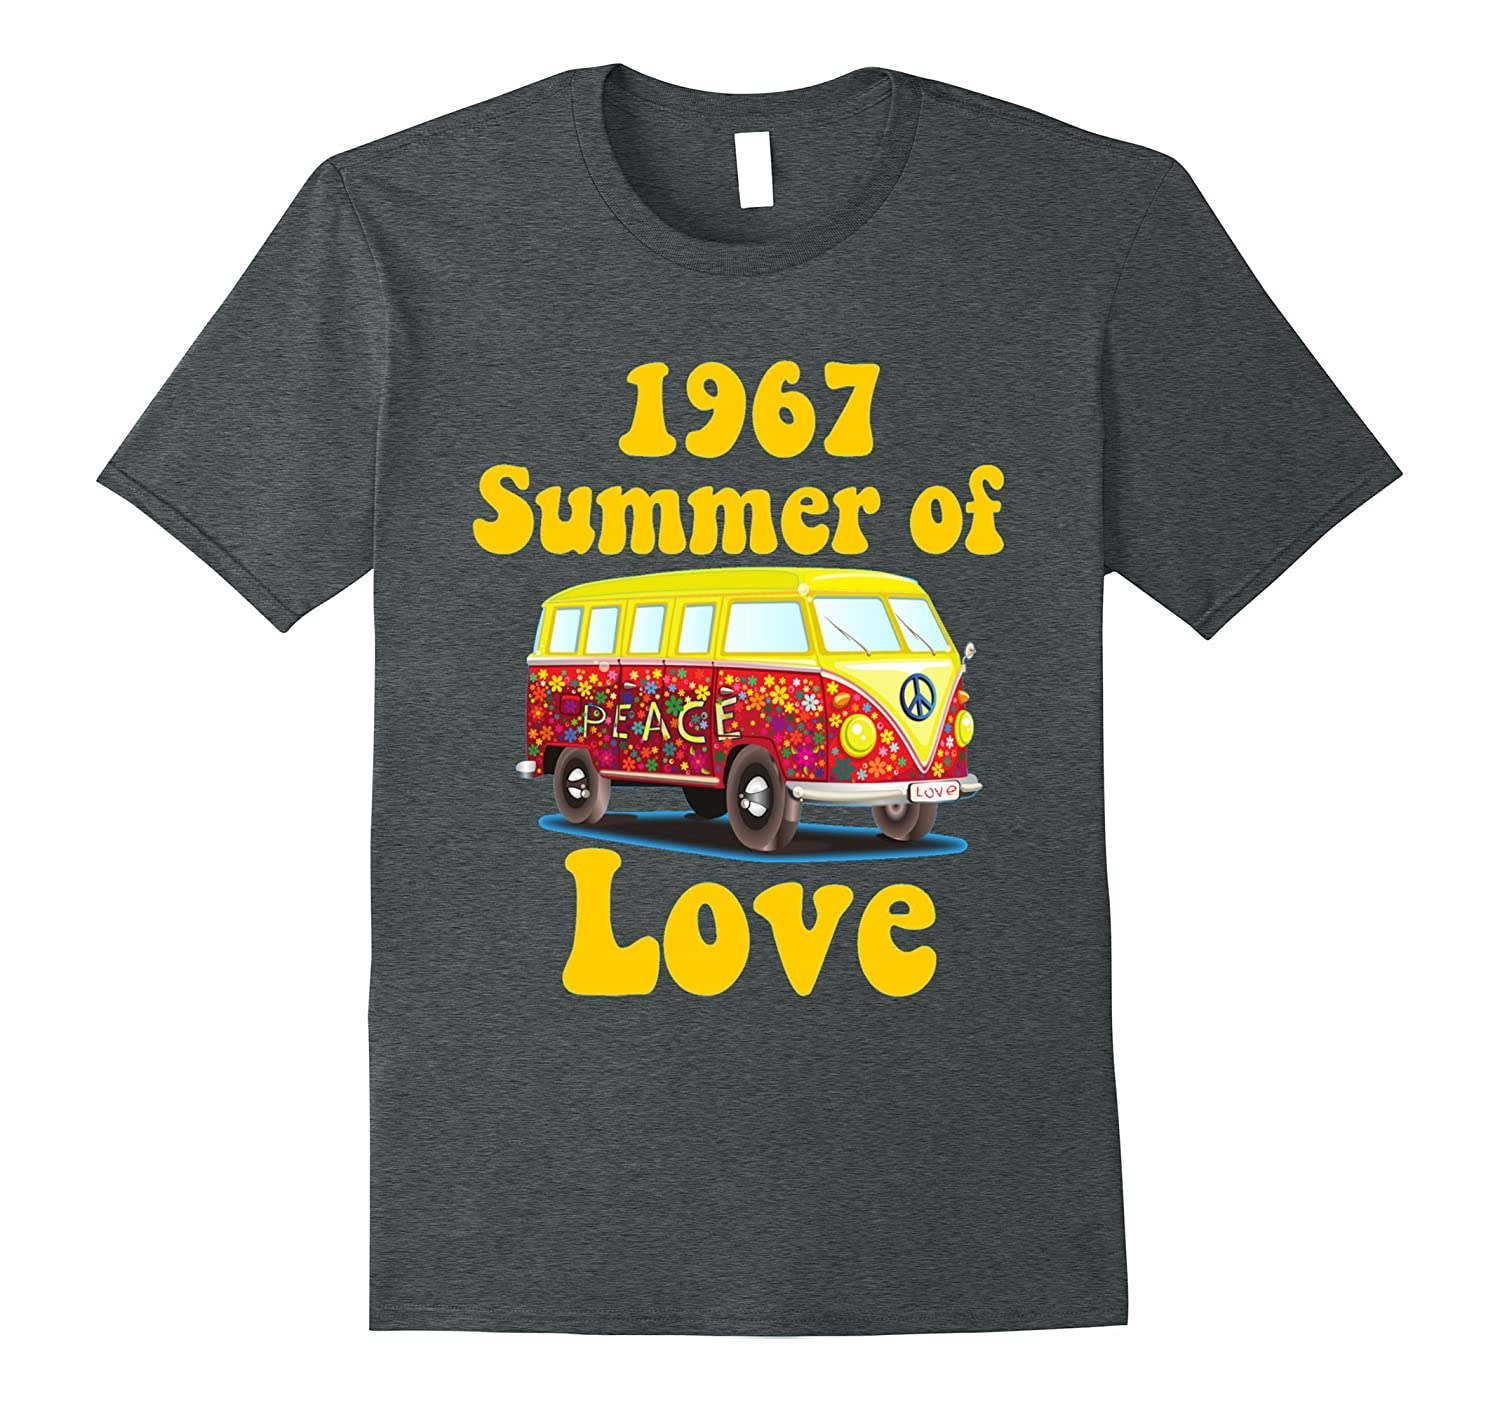 2b327ae59dc 1967 Summer of Love Retro Tees Vintage Sixties Hippie Shirt-RT